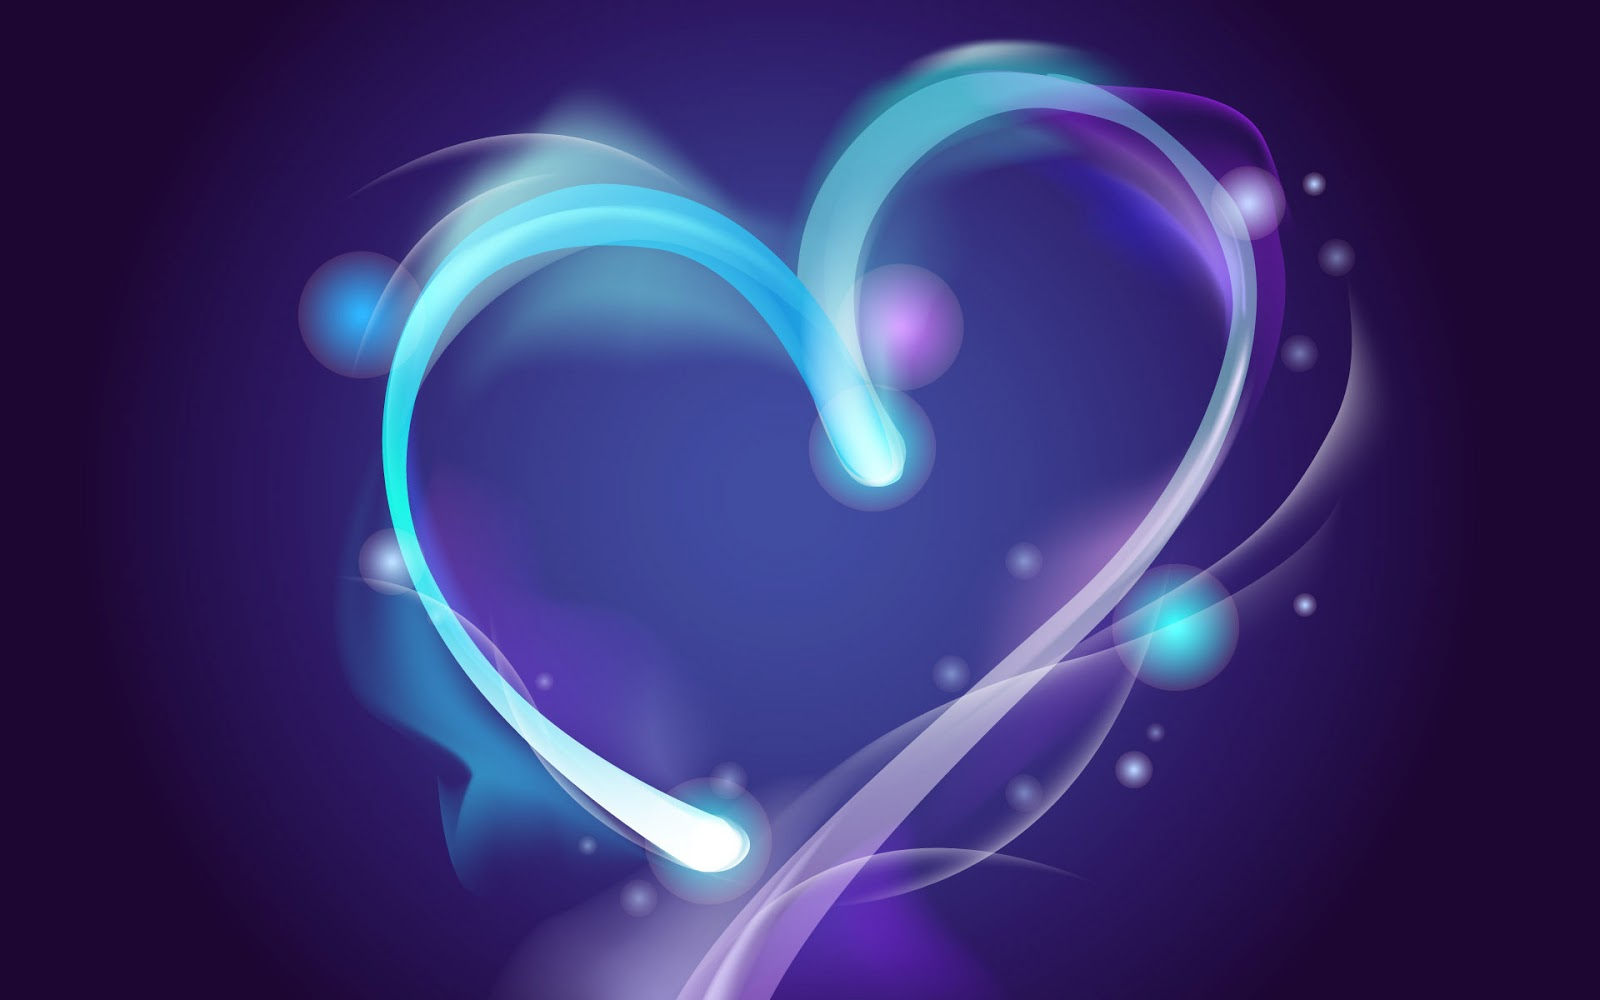 Abstract Wallpaper Black Hearts Blue 3d And Hd Wallpaper: Wallpaper Desk : Heart Love Background, Wallpaper Hearts